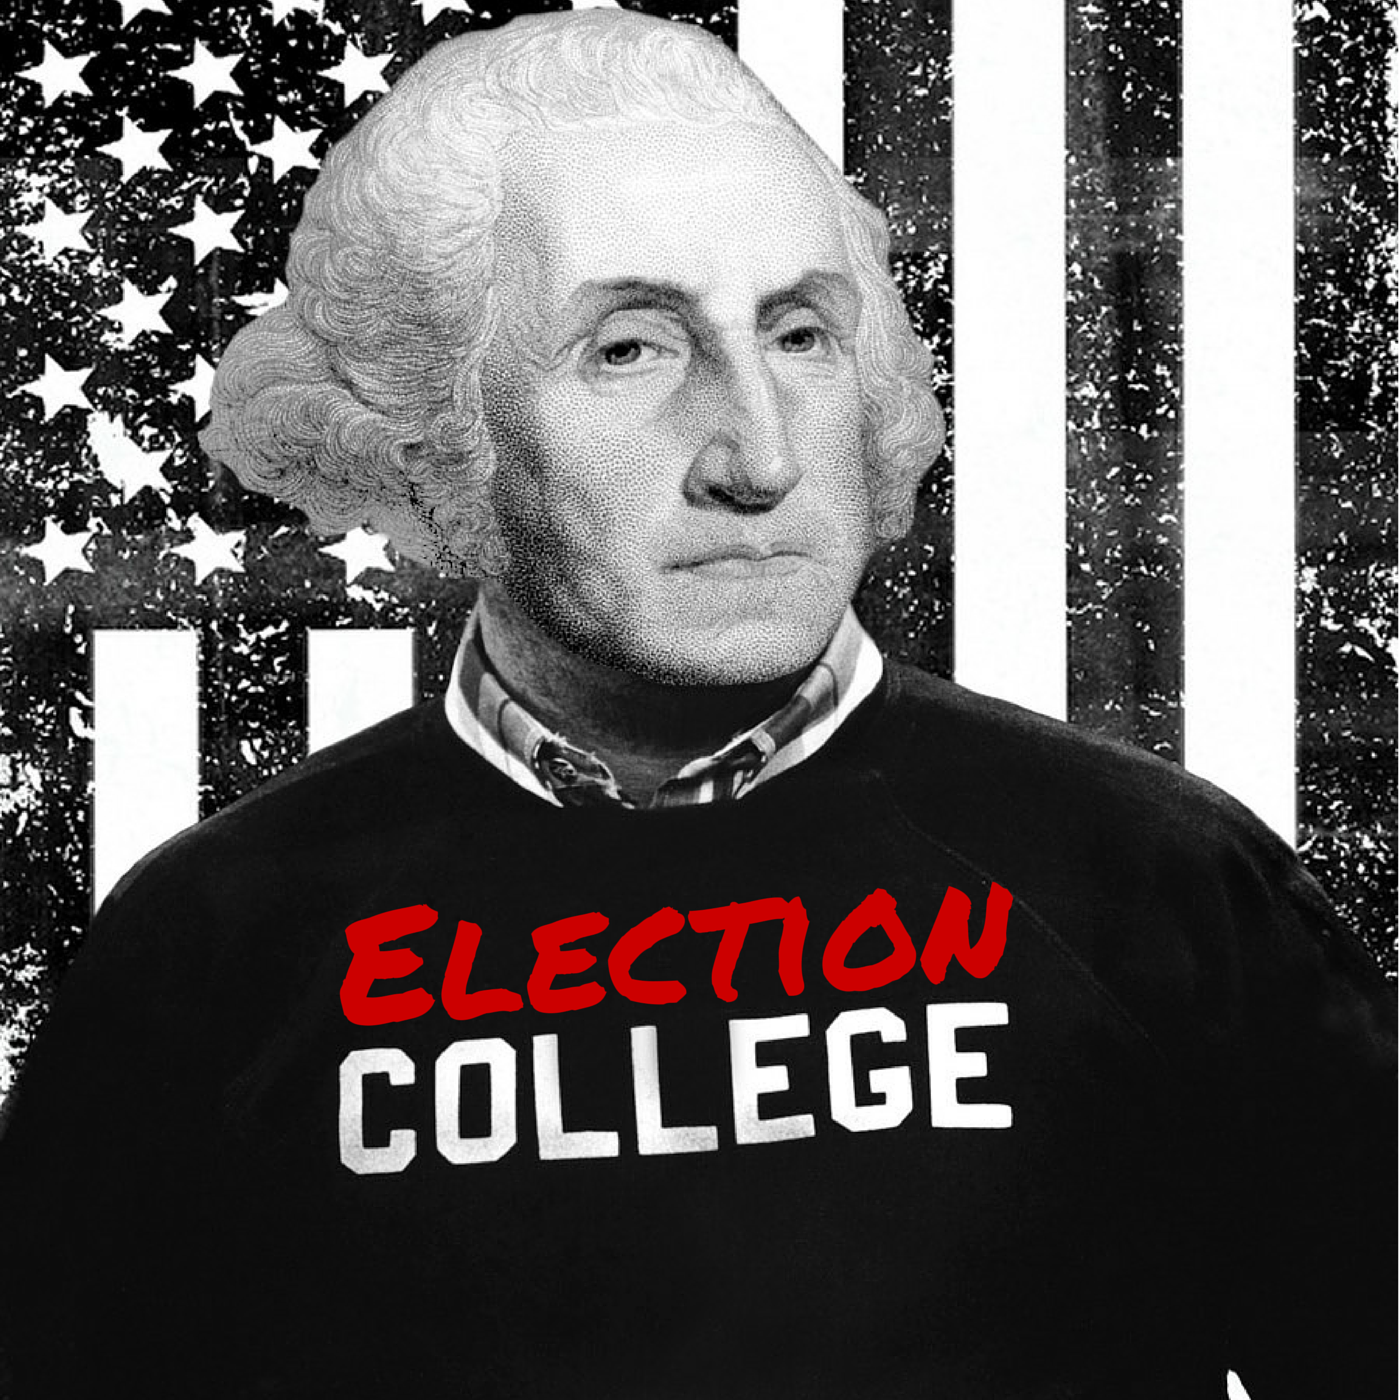 Abraham Lincoln - Part 3 | Episode #228 | Election College: United States Presidential Election History